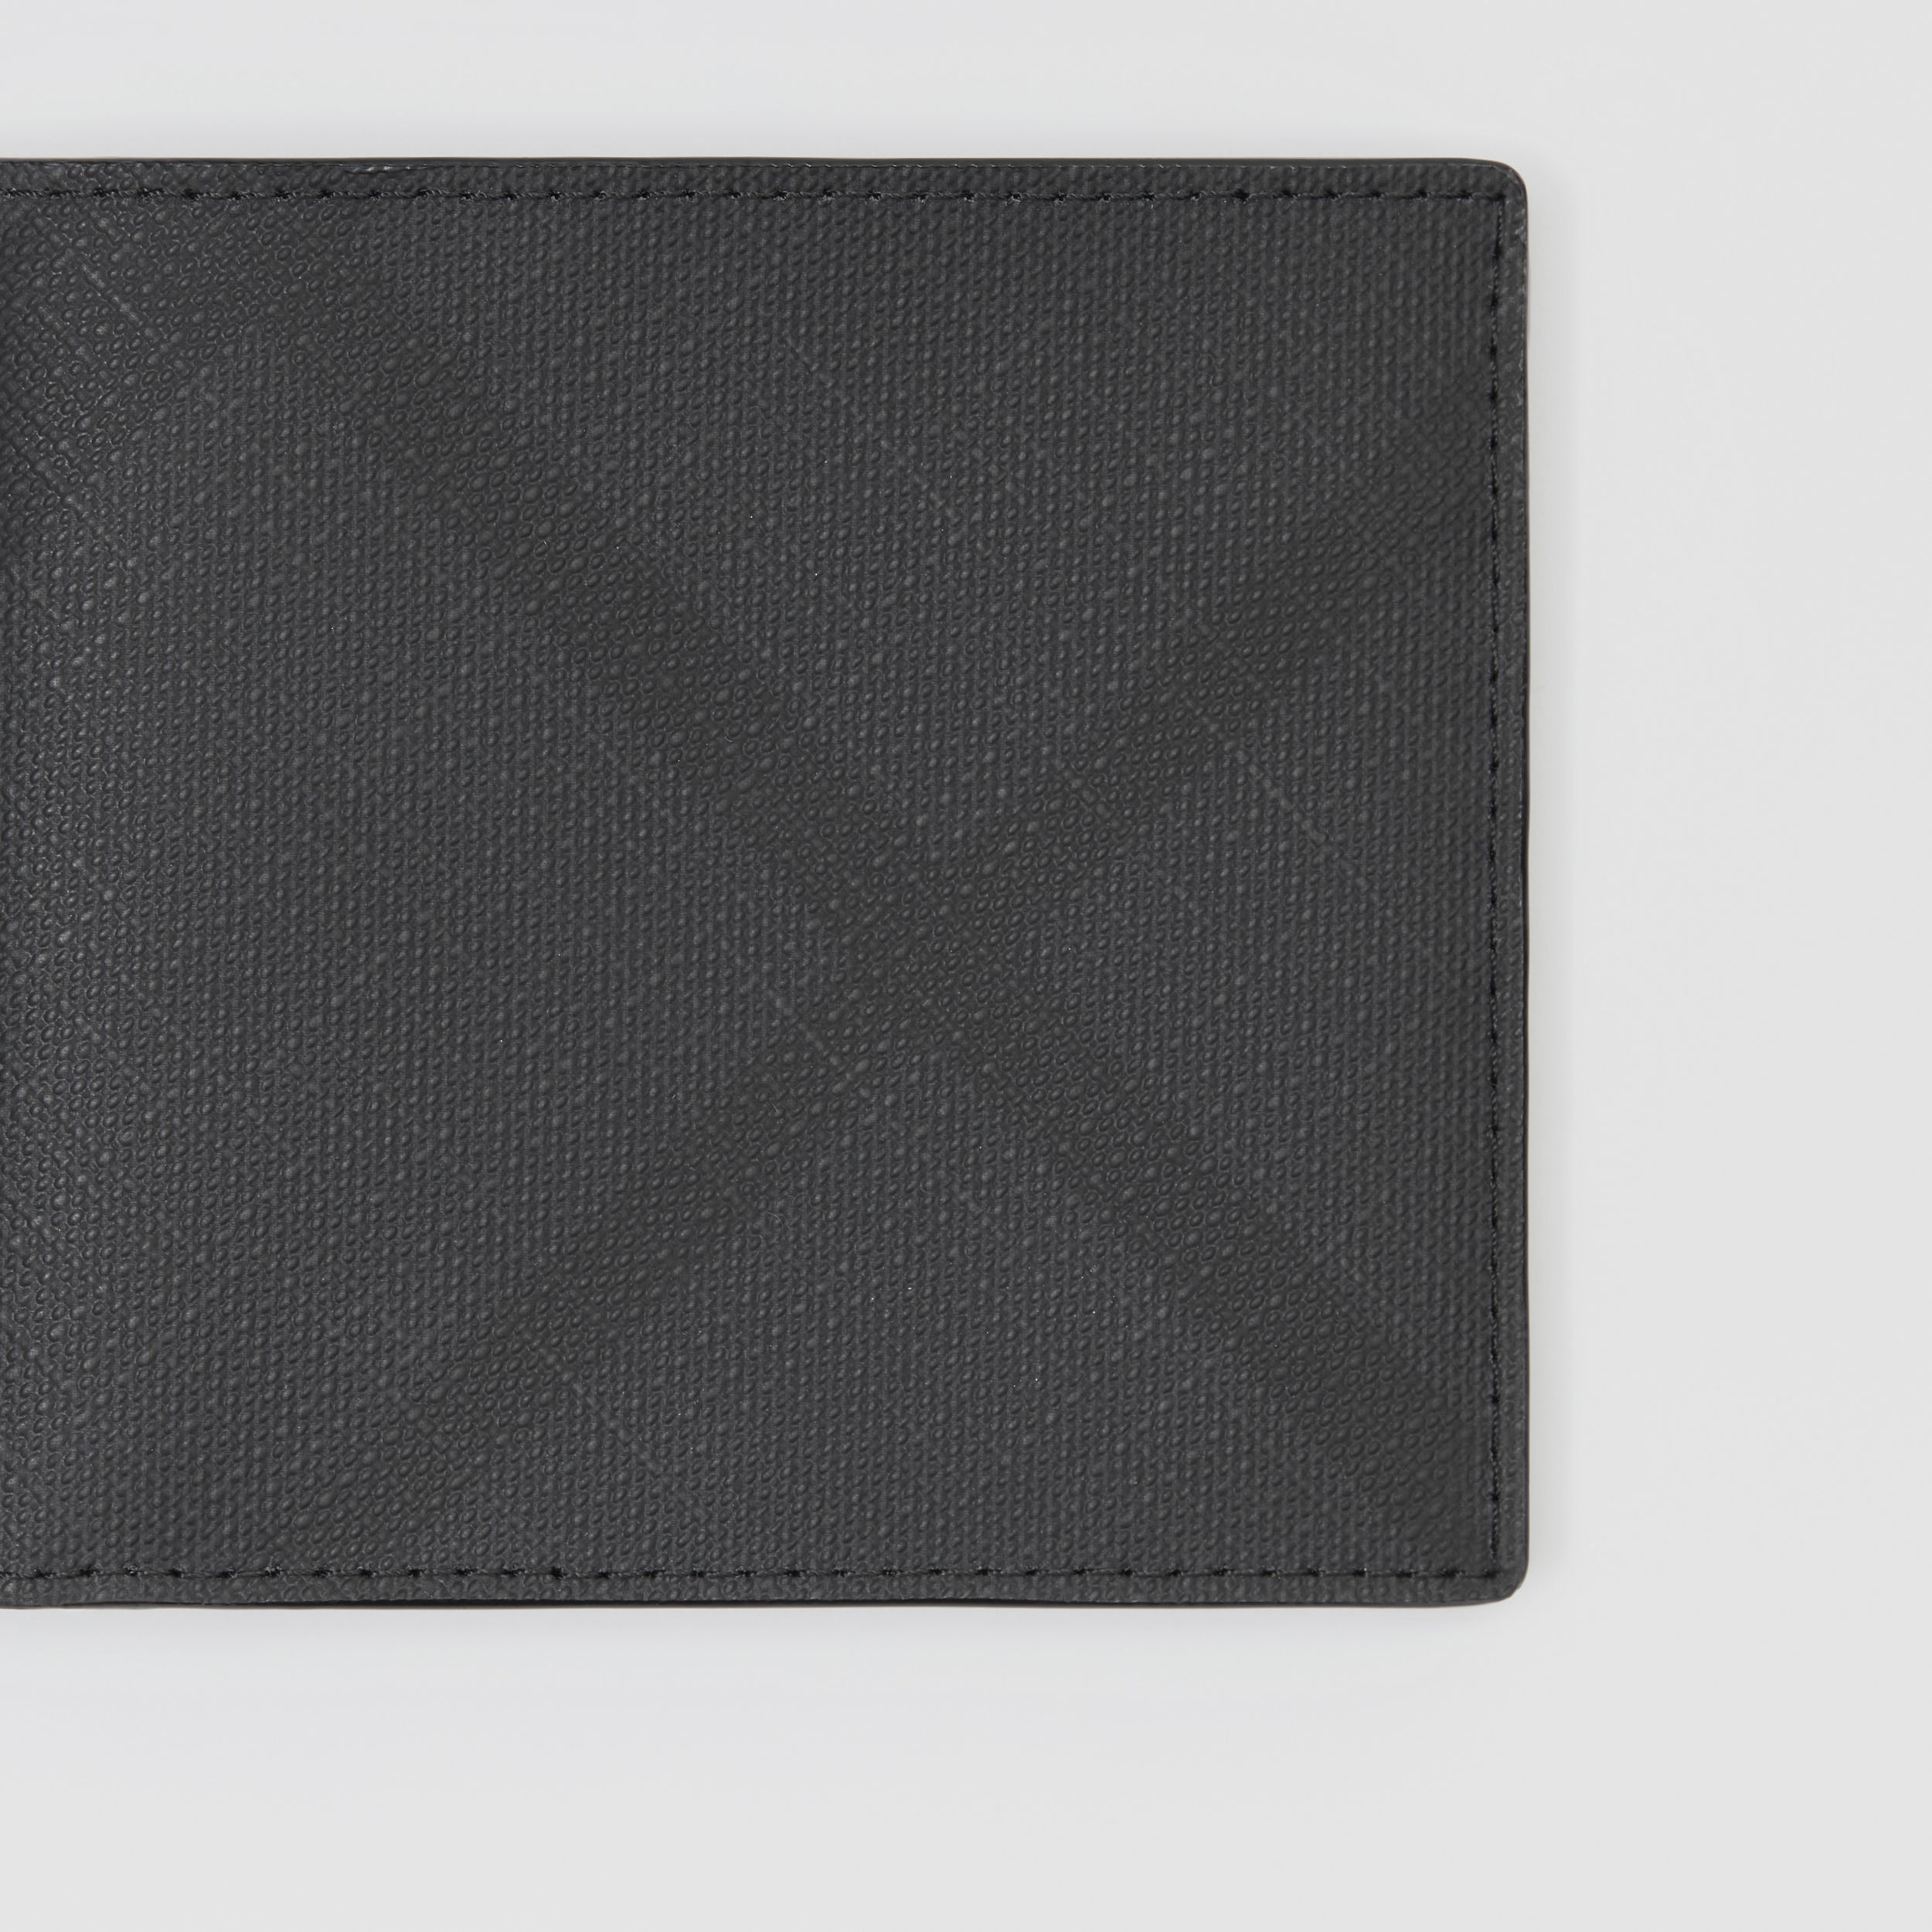 London Check and Leather International Bifold Wallet in Dark Charcoal - Men | Burberry Hong Kong S.A.R. - 2